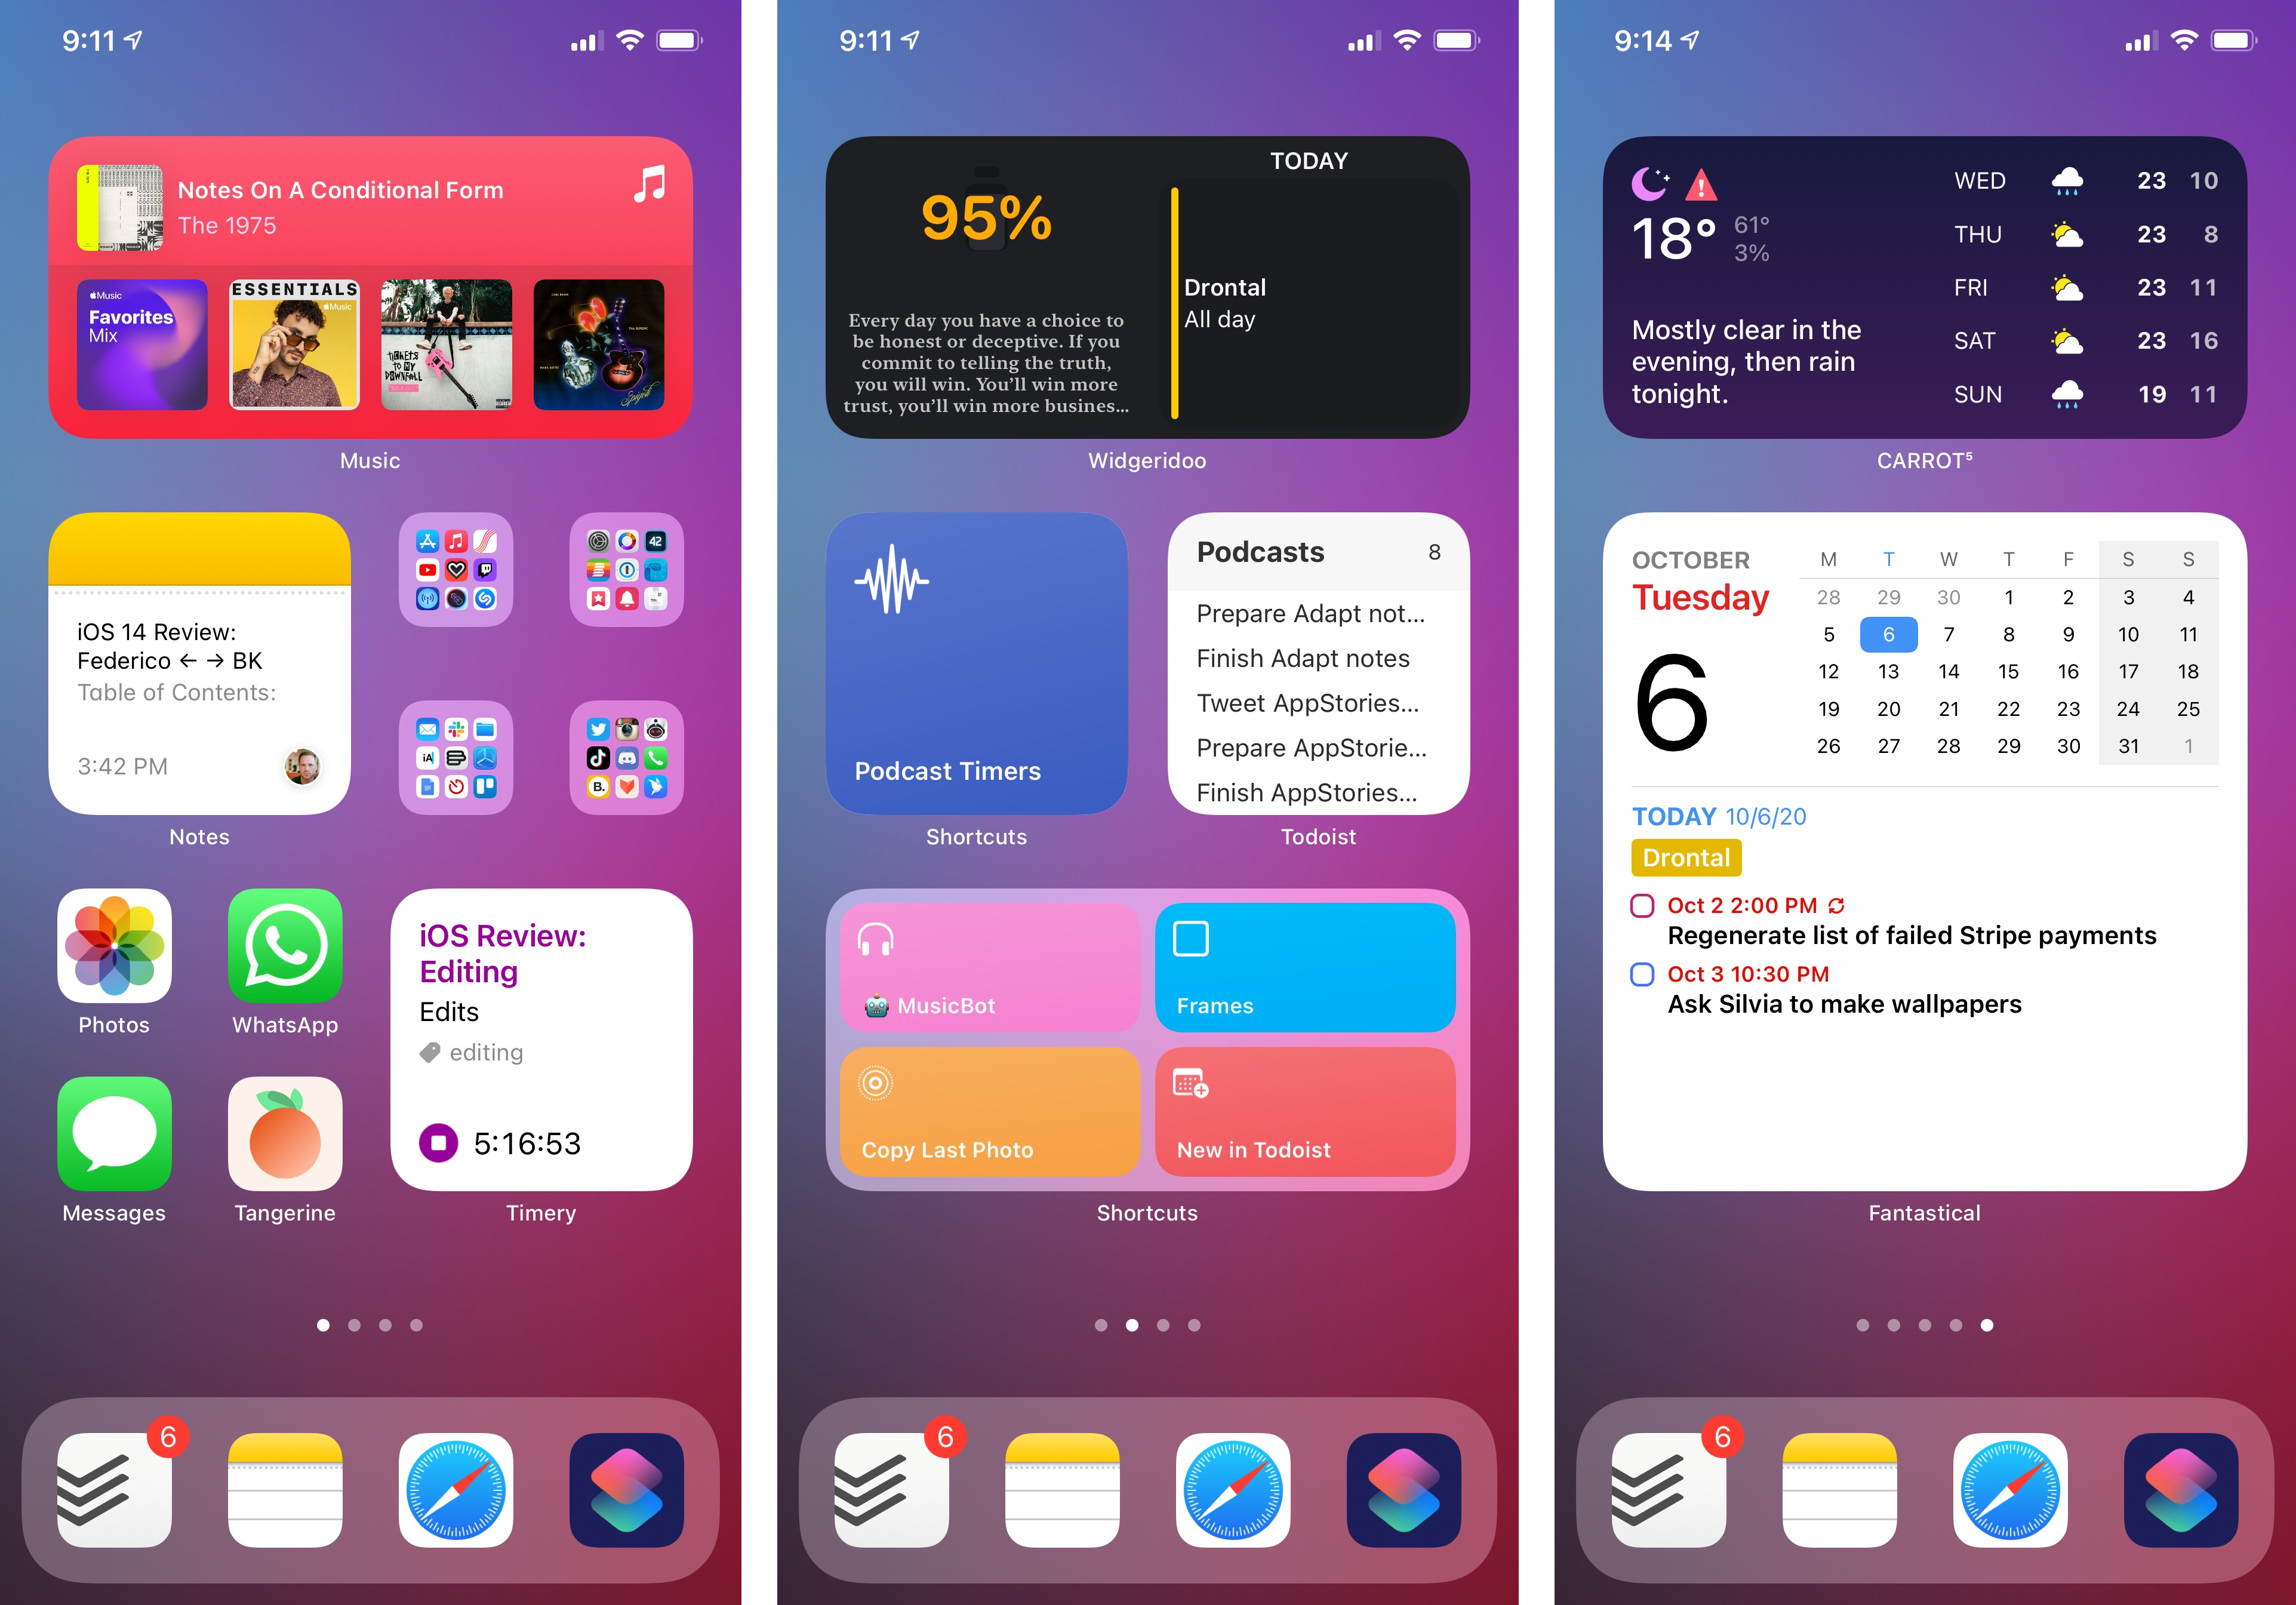 Widgets on the Home Screen in iOS 14.